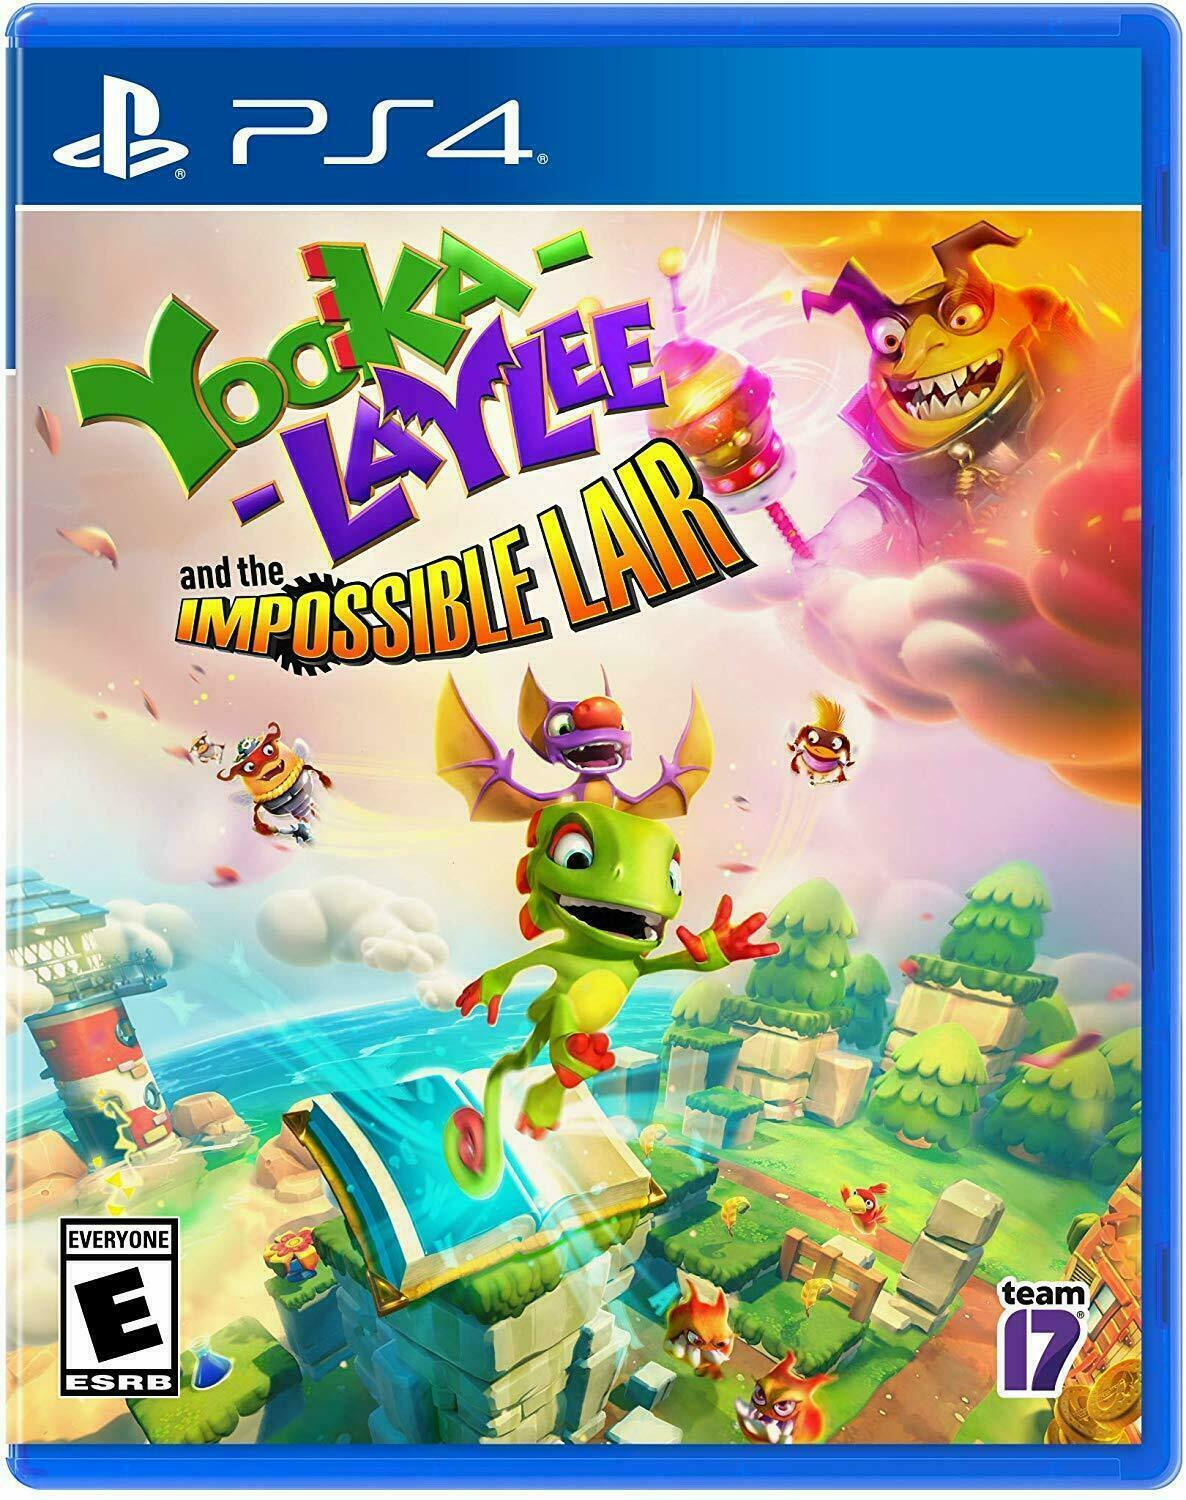 Yooka-Laylee and the Impossible Lair (Playstation 4, PS4)